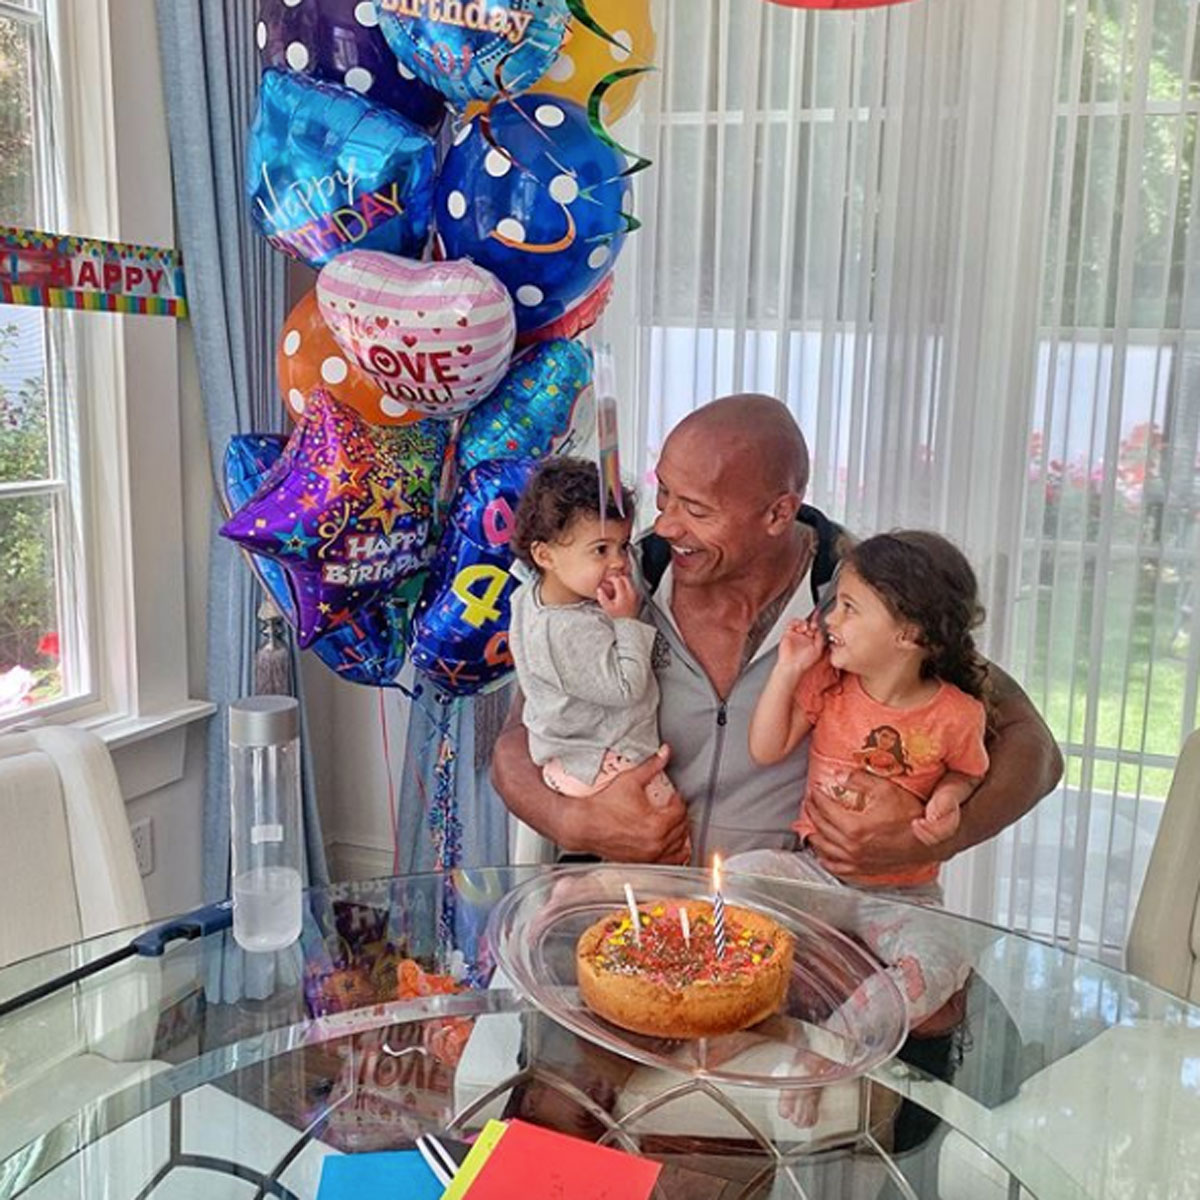 Dwayne Johnson posing with two of his three daughters